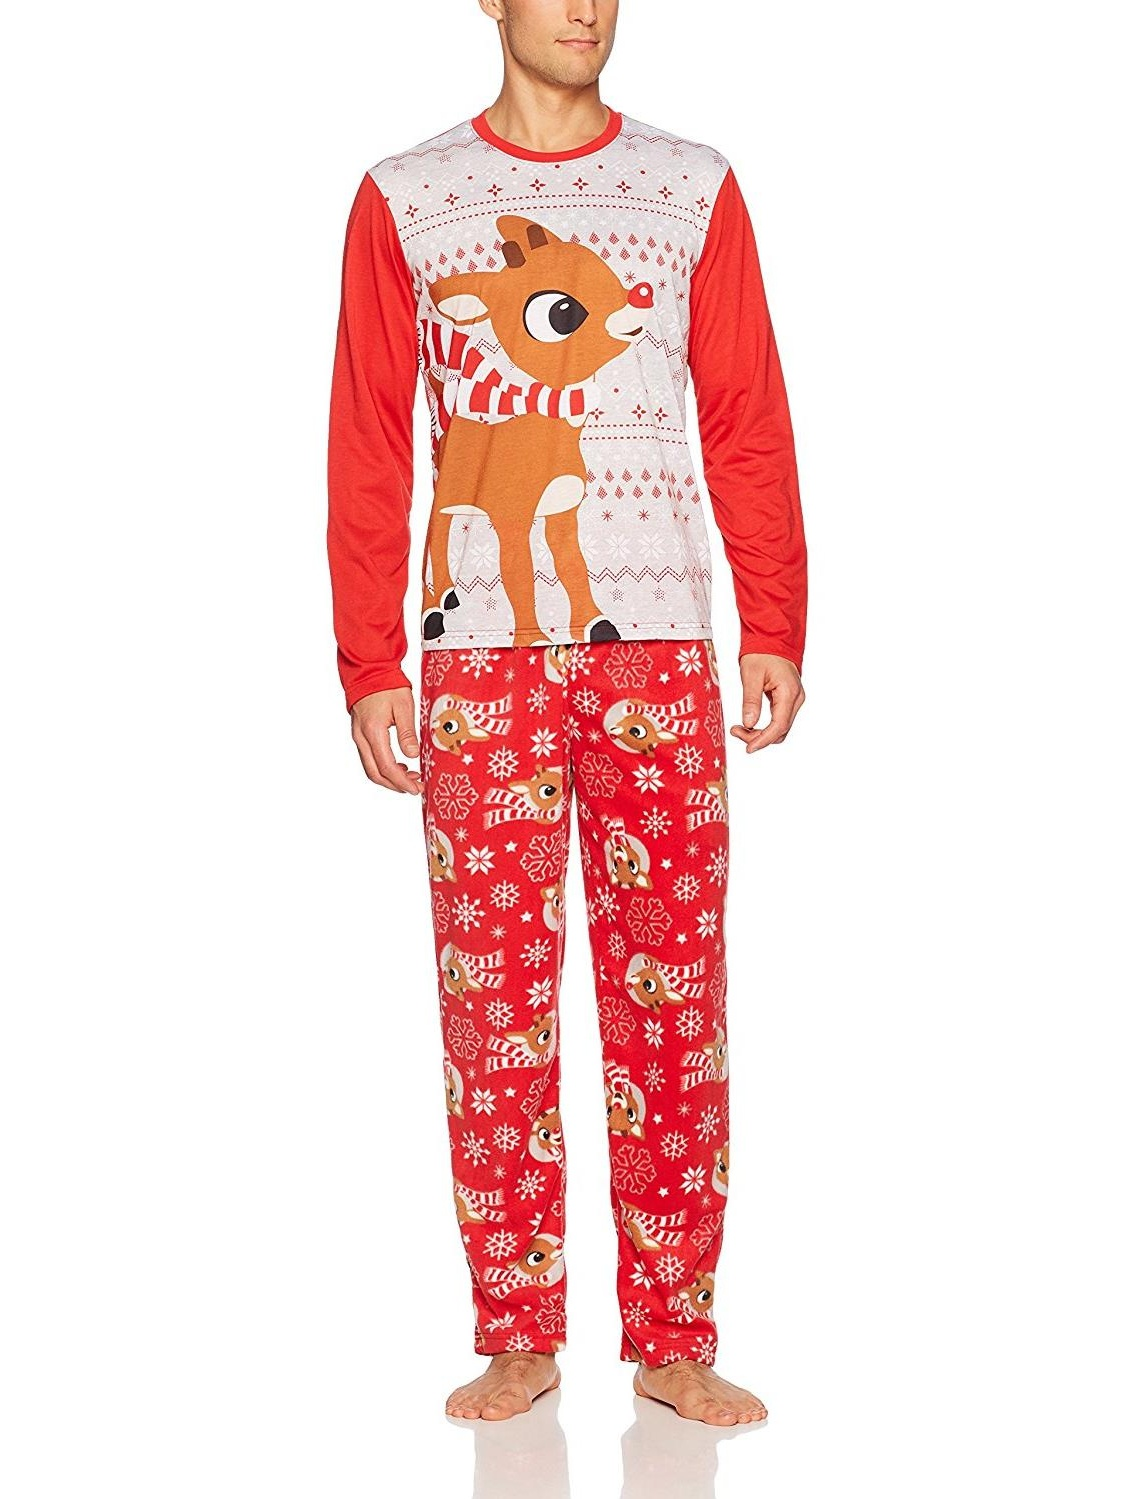 Rudolph s Red Nose Family Sleep 2-Piece Pajama Set Or Footie, Men Red, Size: Small